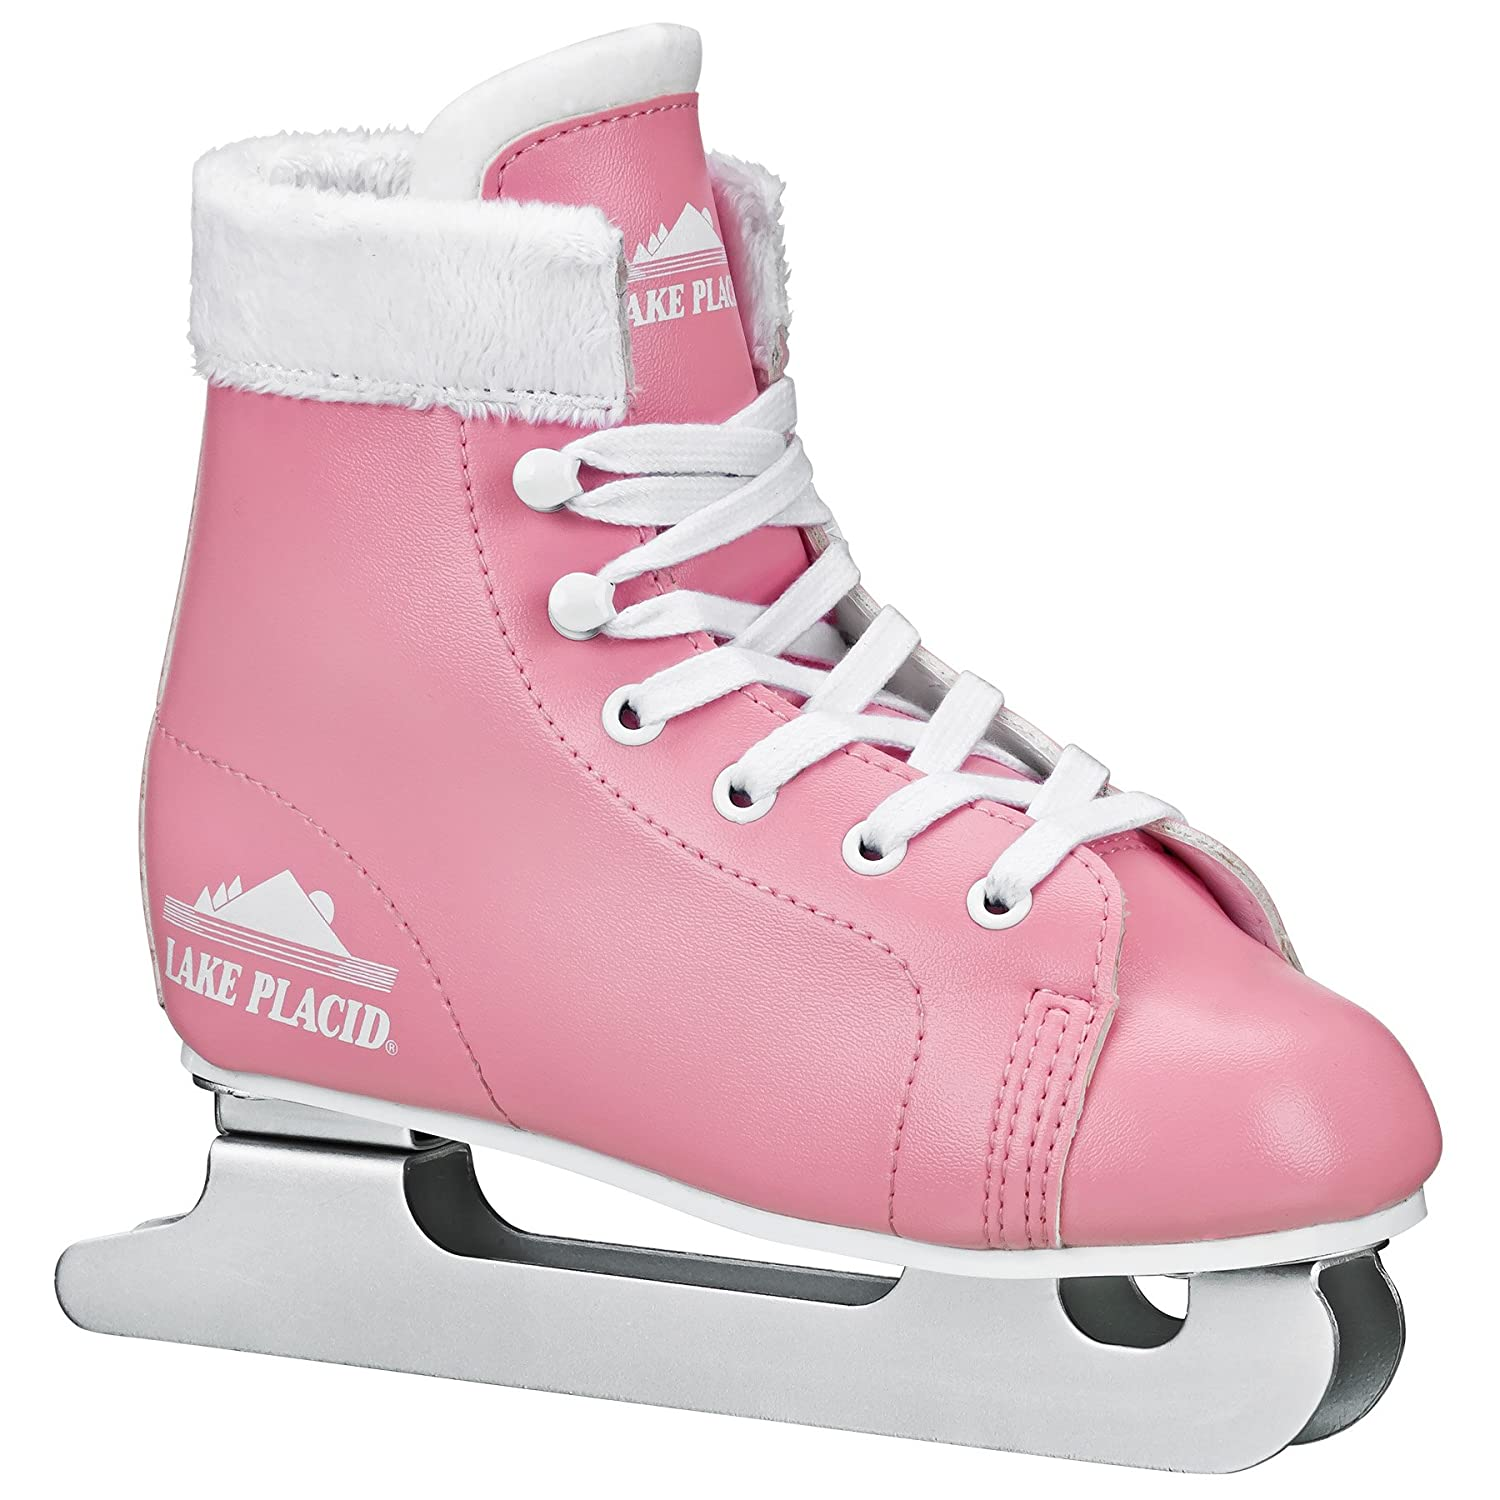 Lake Placid Starglide Girls Double Runner Figure Ice Skate